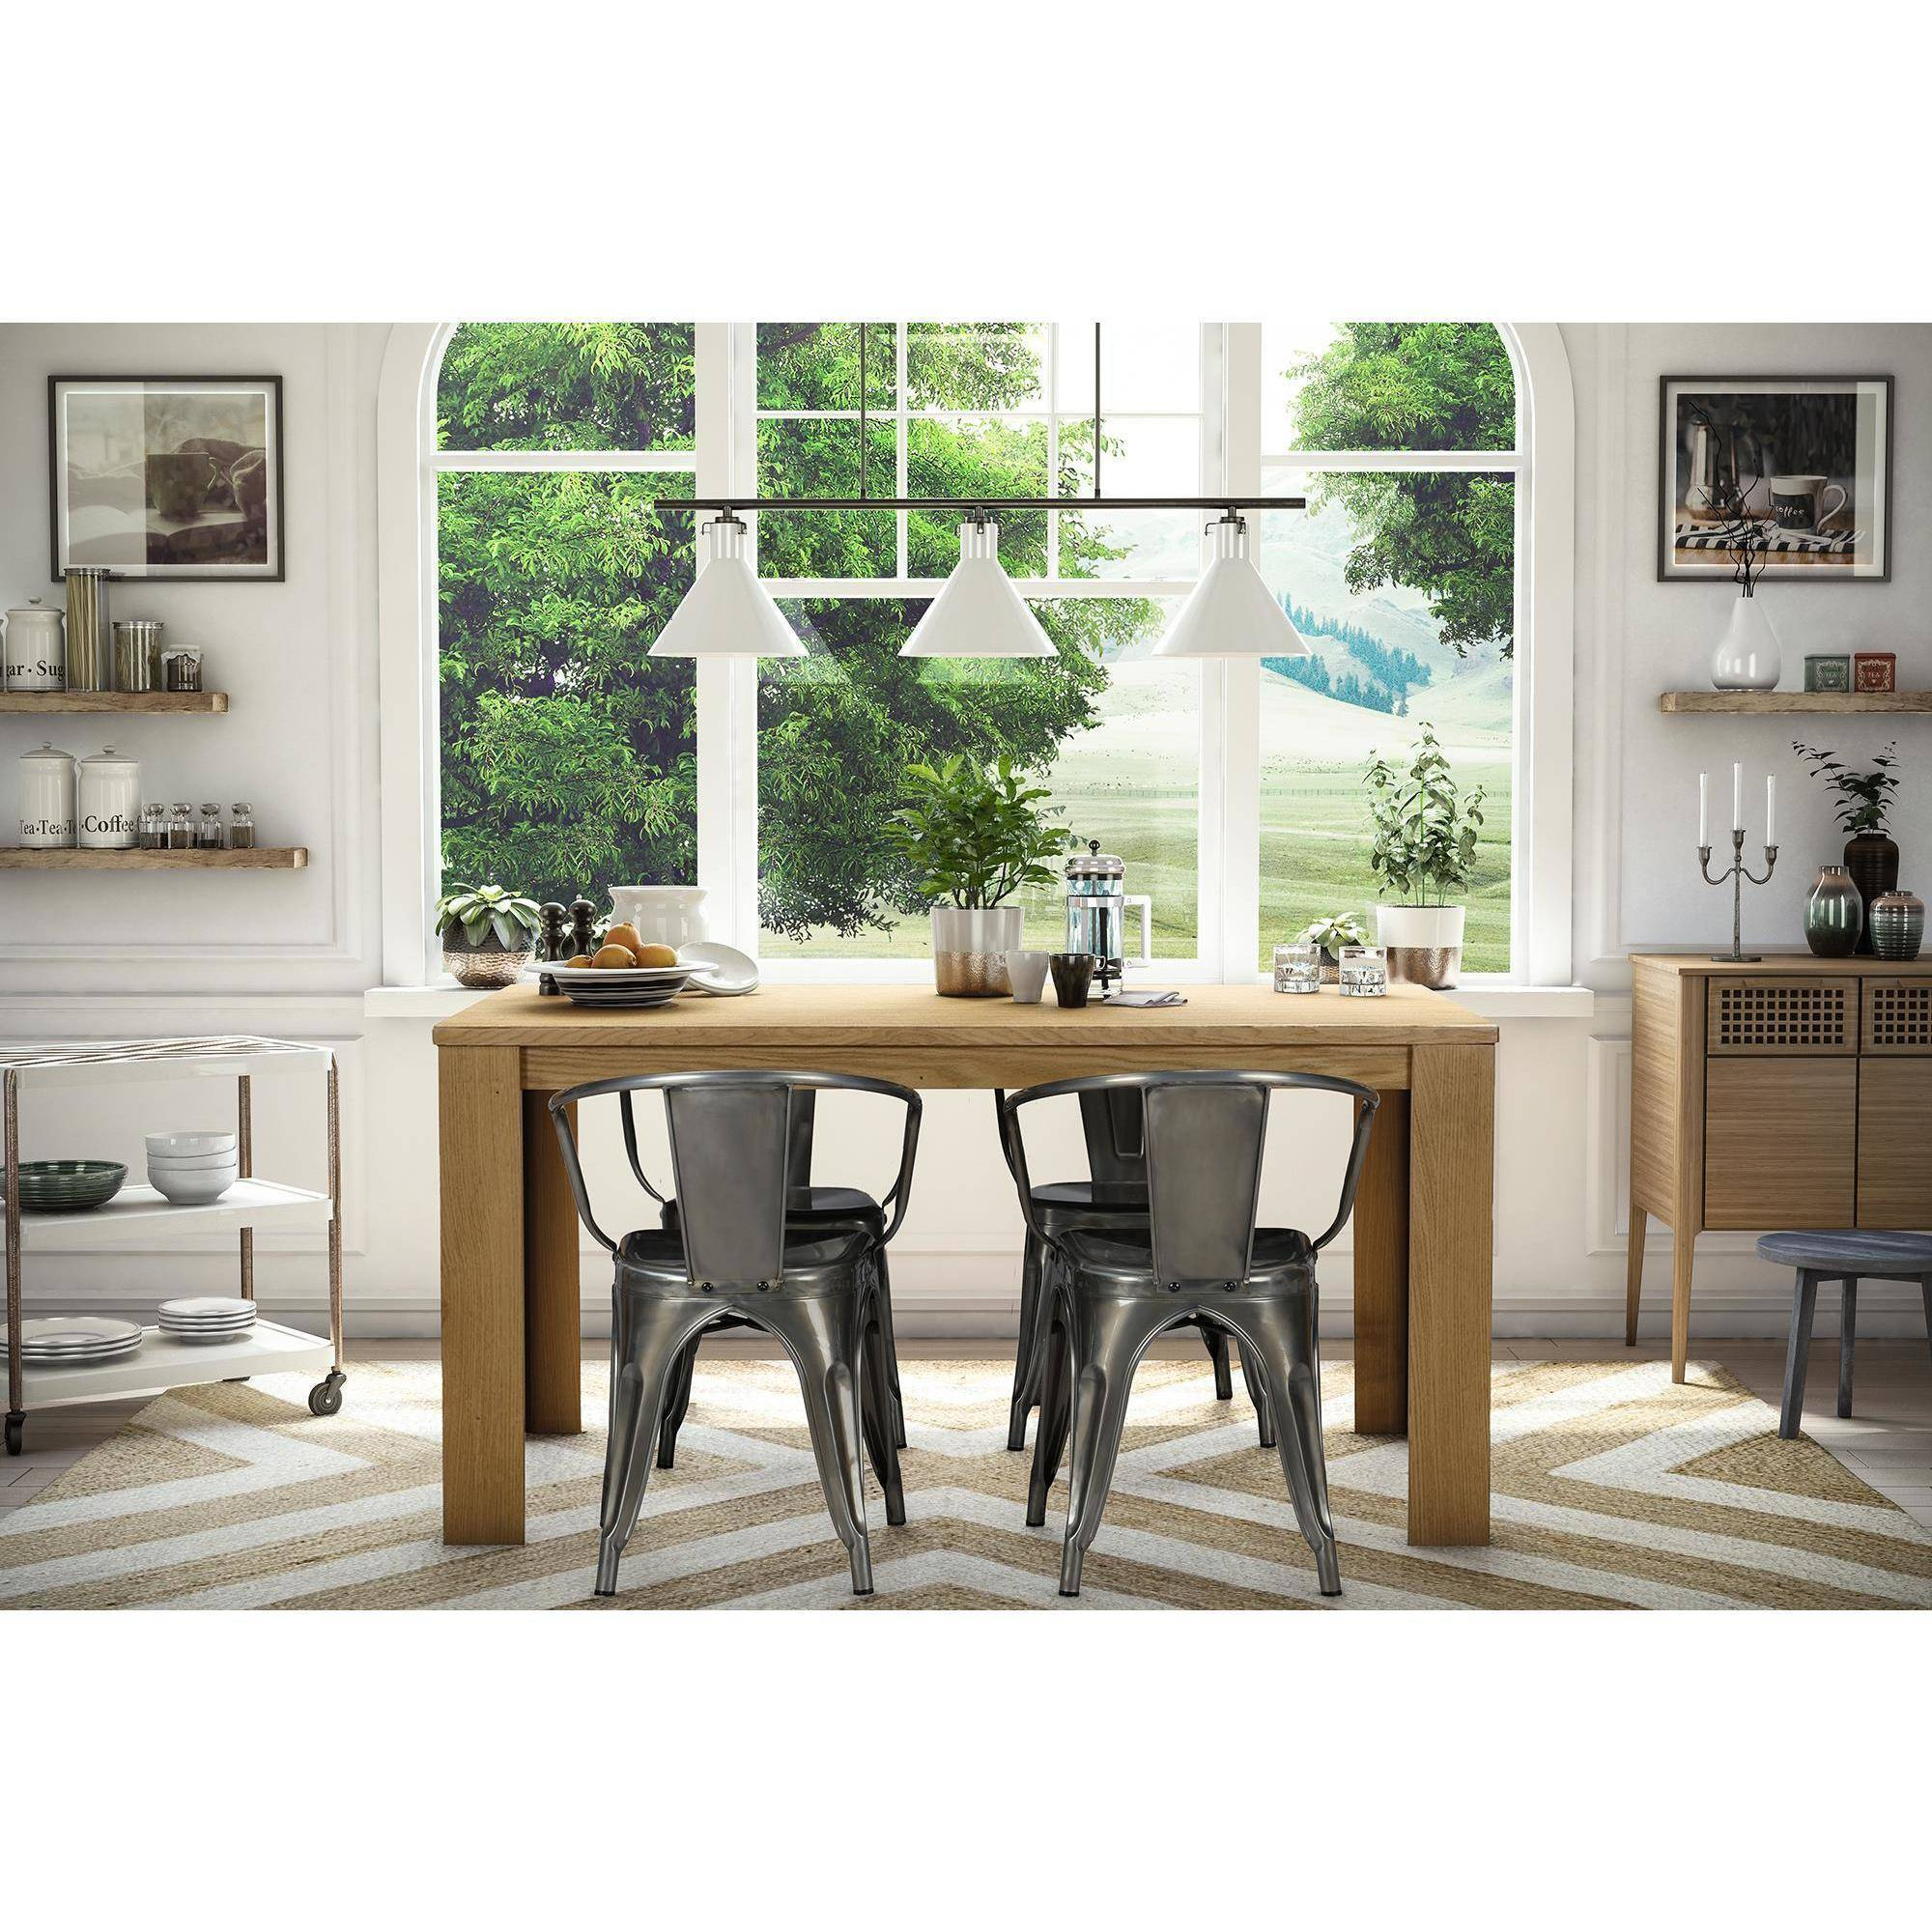 metal dining room furniture. dorel home products elise metal dining chair set of 2 multiple colors room furniture